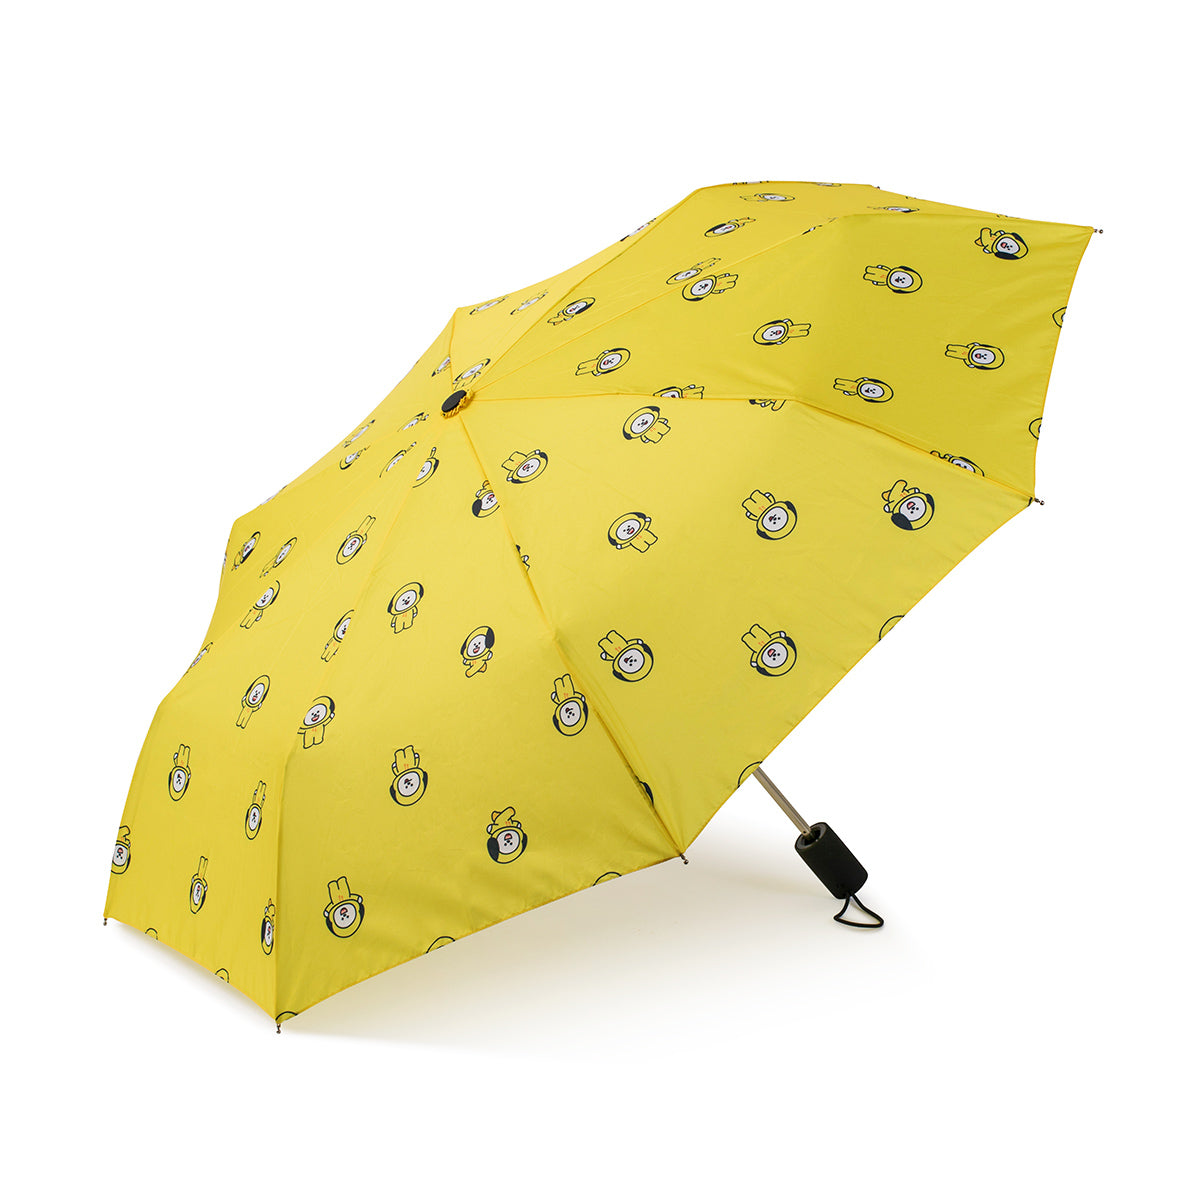 BT21 CHIMMY Auto Umbrella